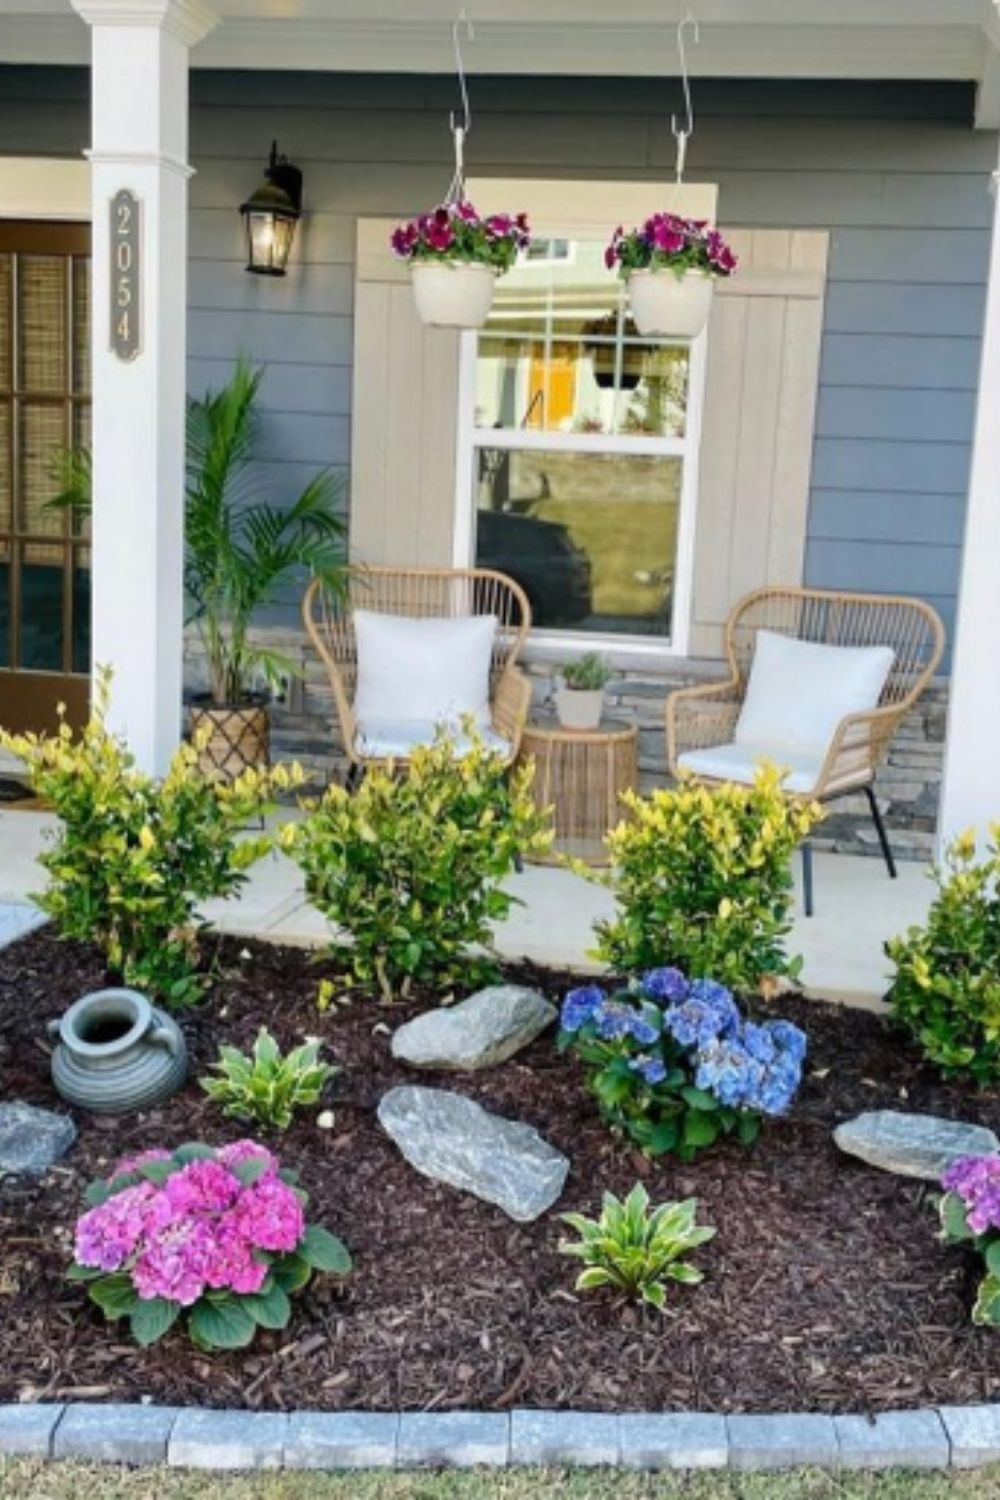 Beautiful Front Yard Patio Ideas To Decor Your House In 2021!